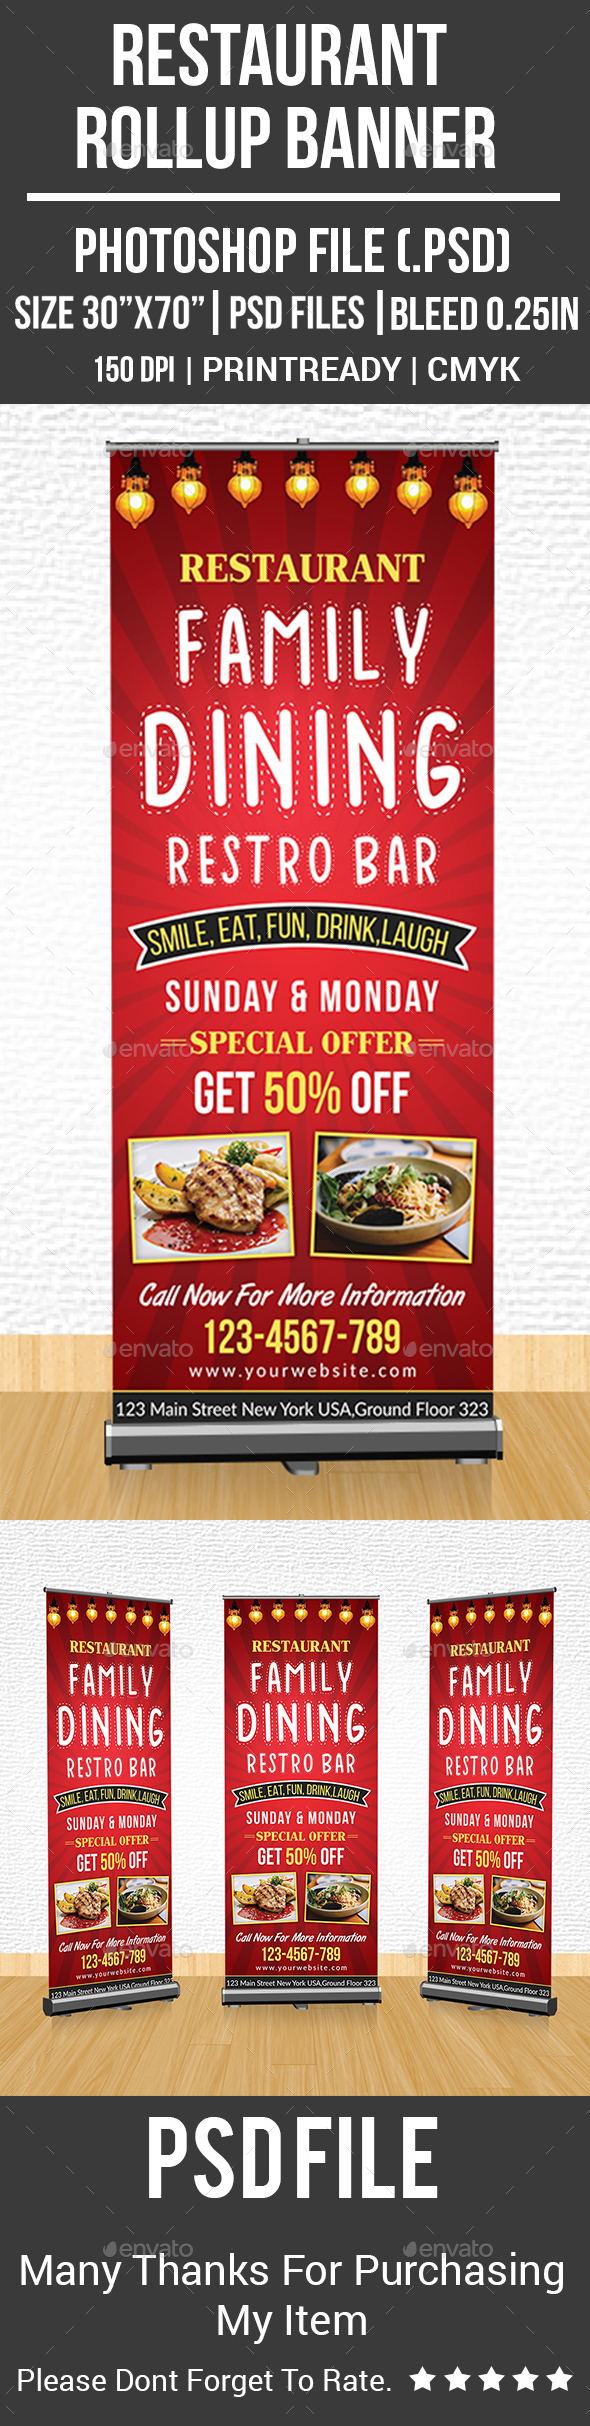 GraphicRiver Restaurant Rollup Banner 21174139